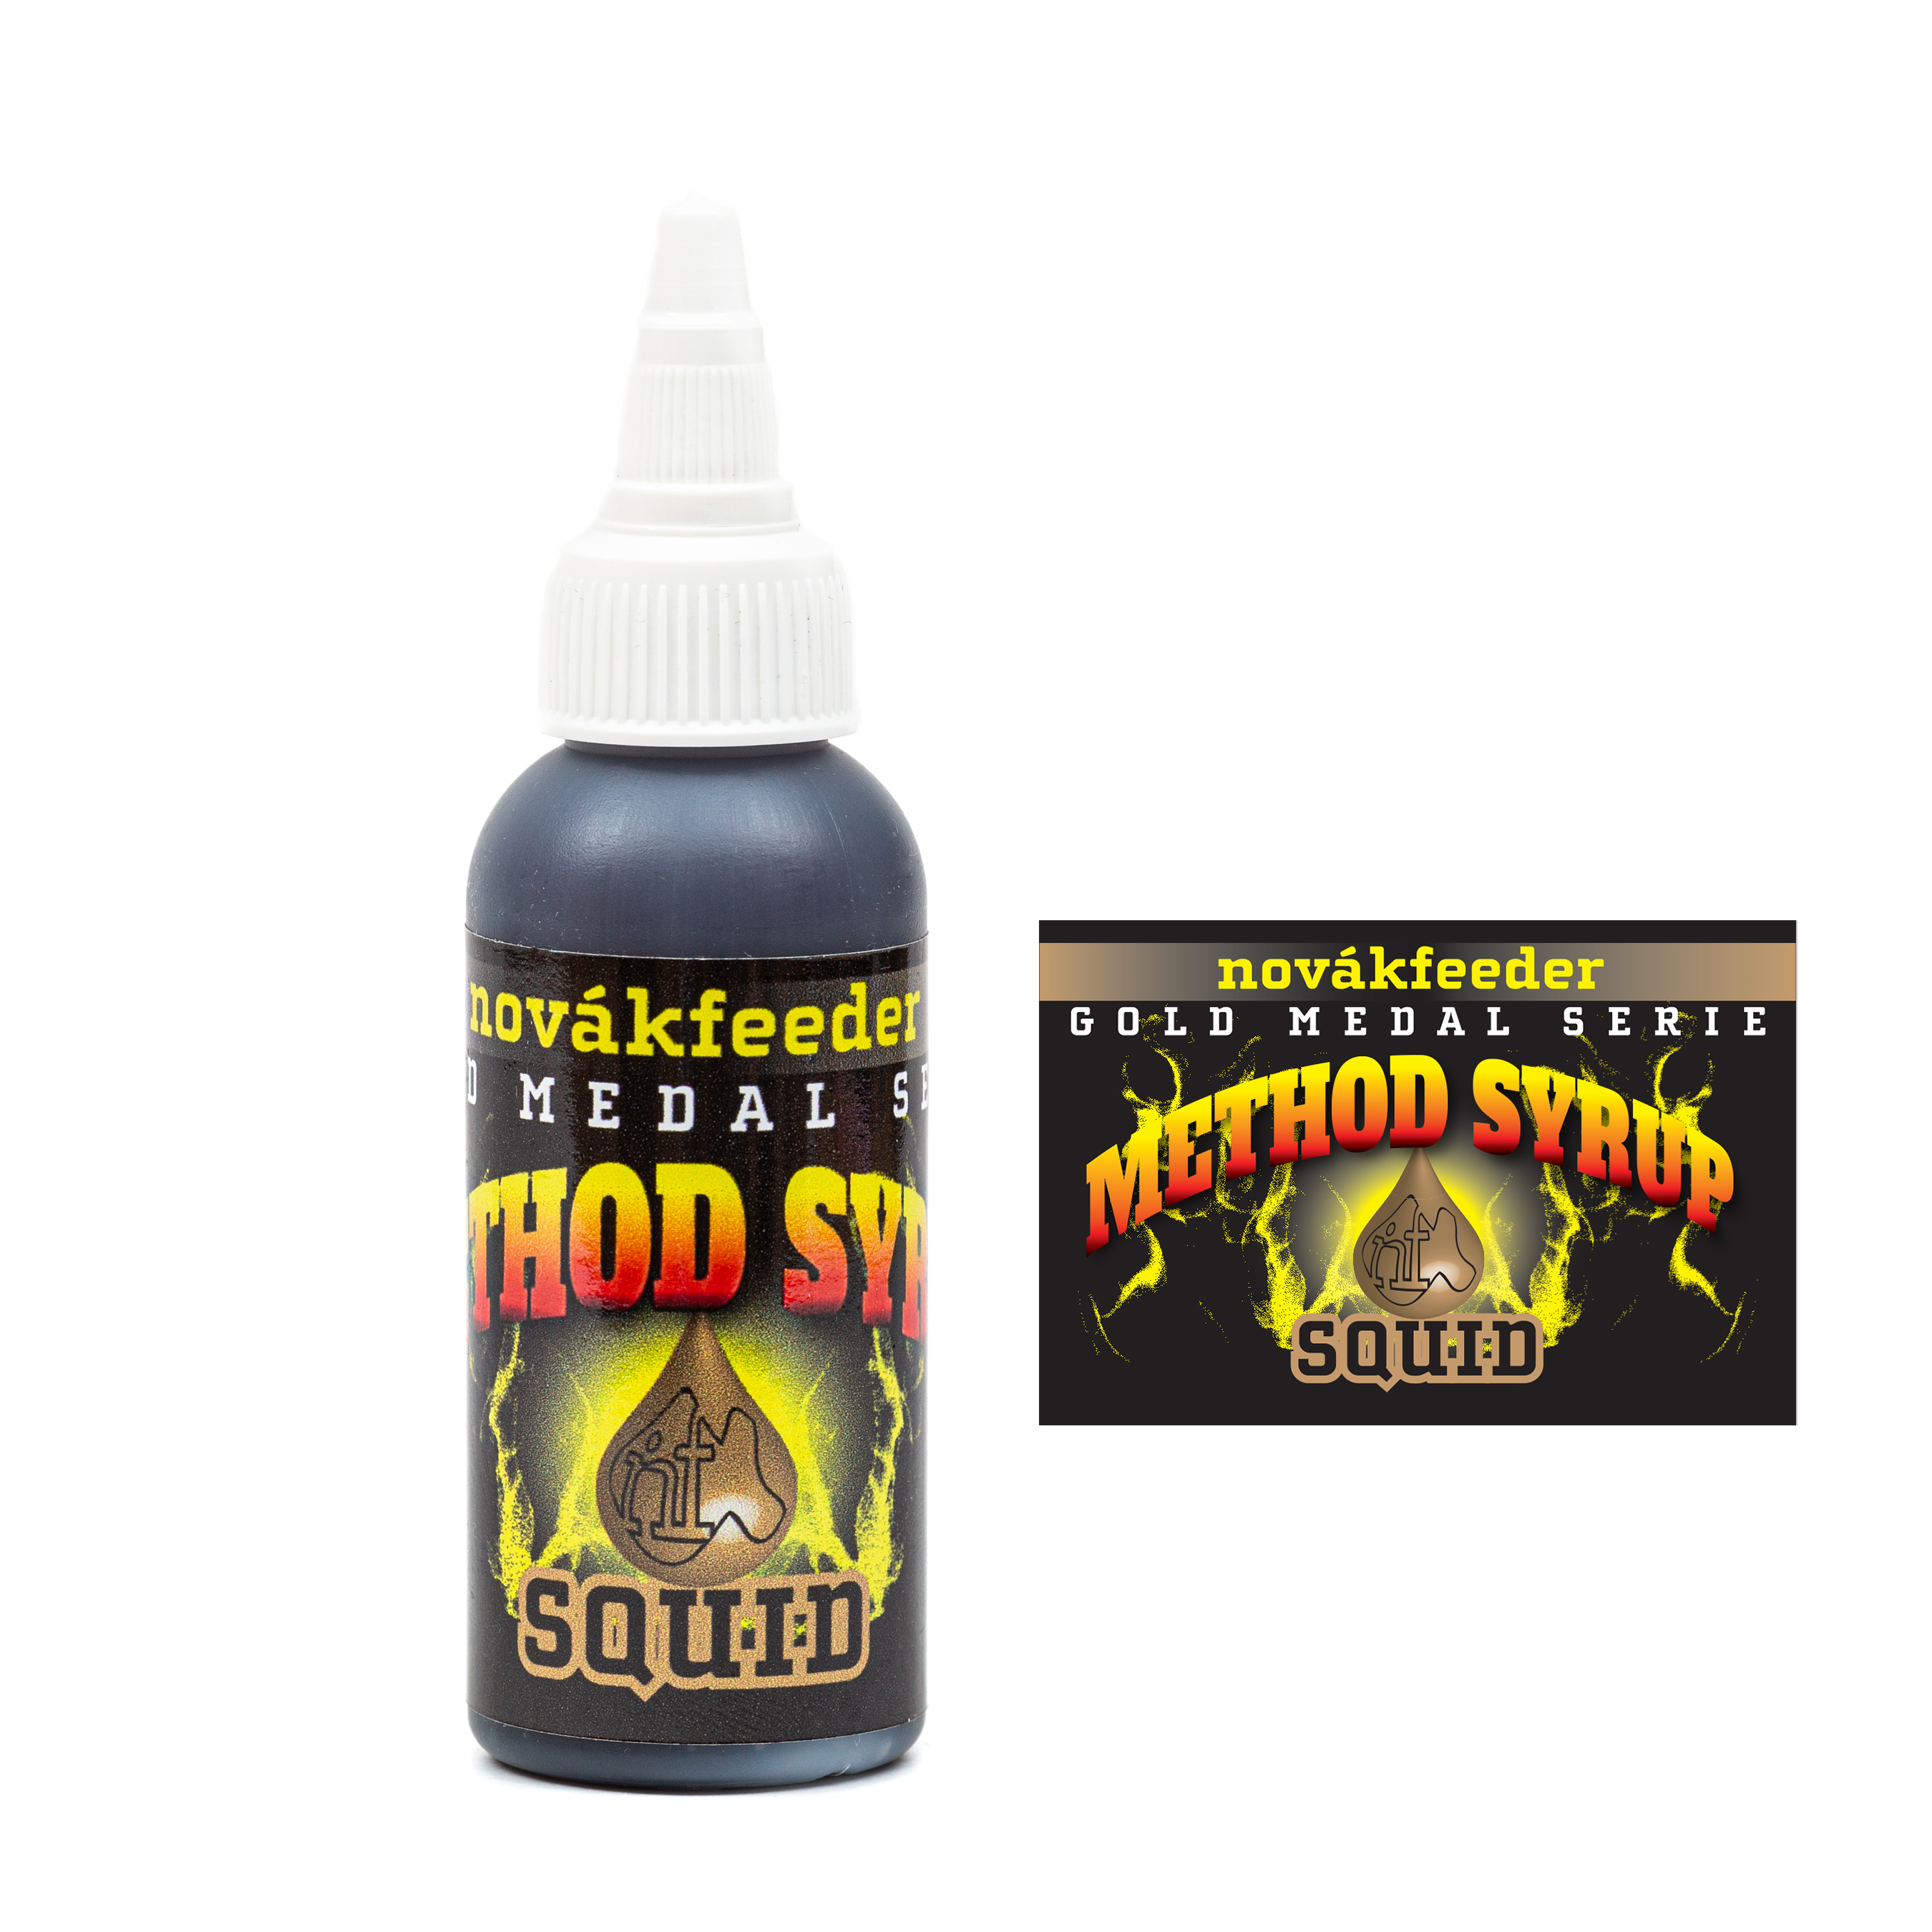 Novák Feeder Method syrup 60ml - Squid